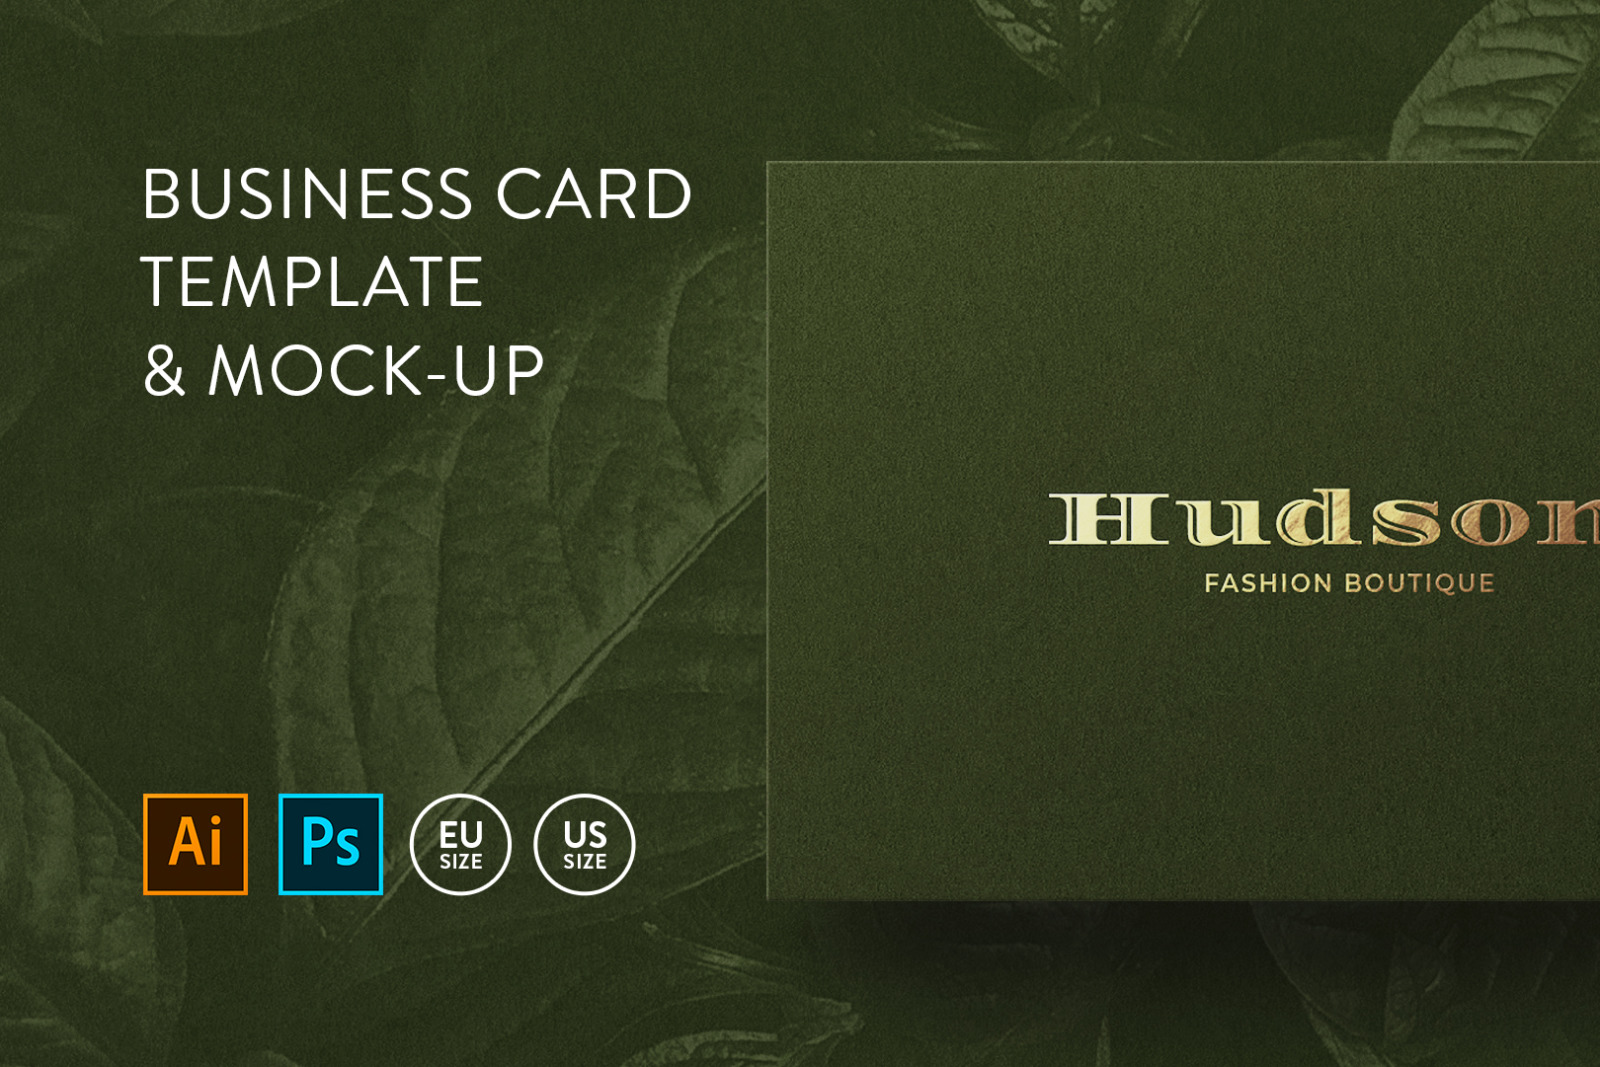 Business card Template & Mock-up #42